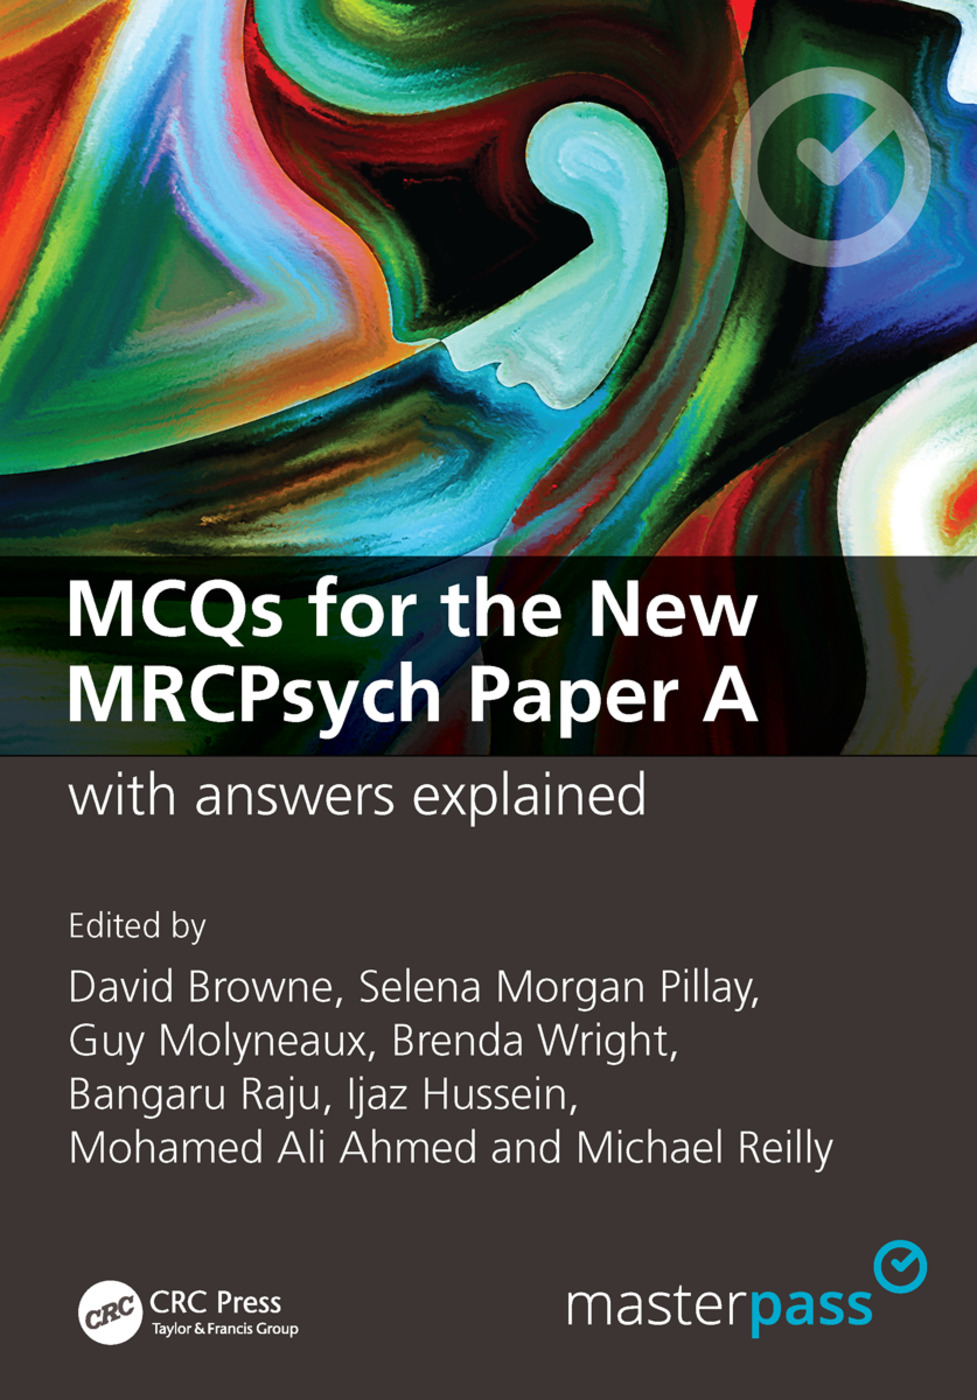 MCQs for the New MRCPsych Paper A